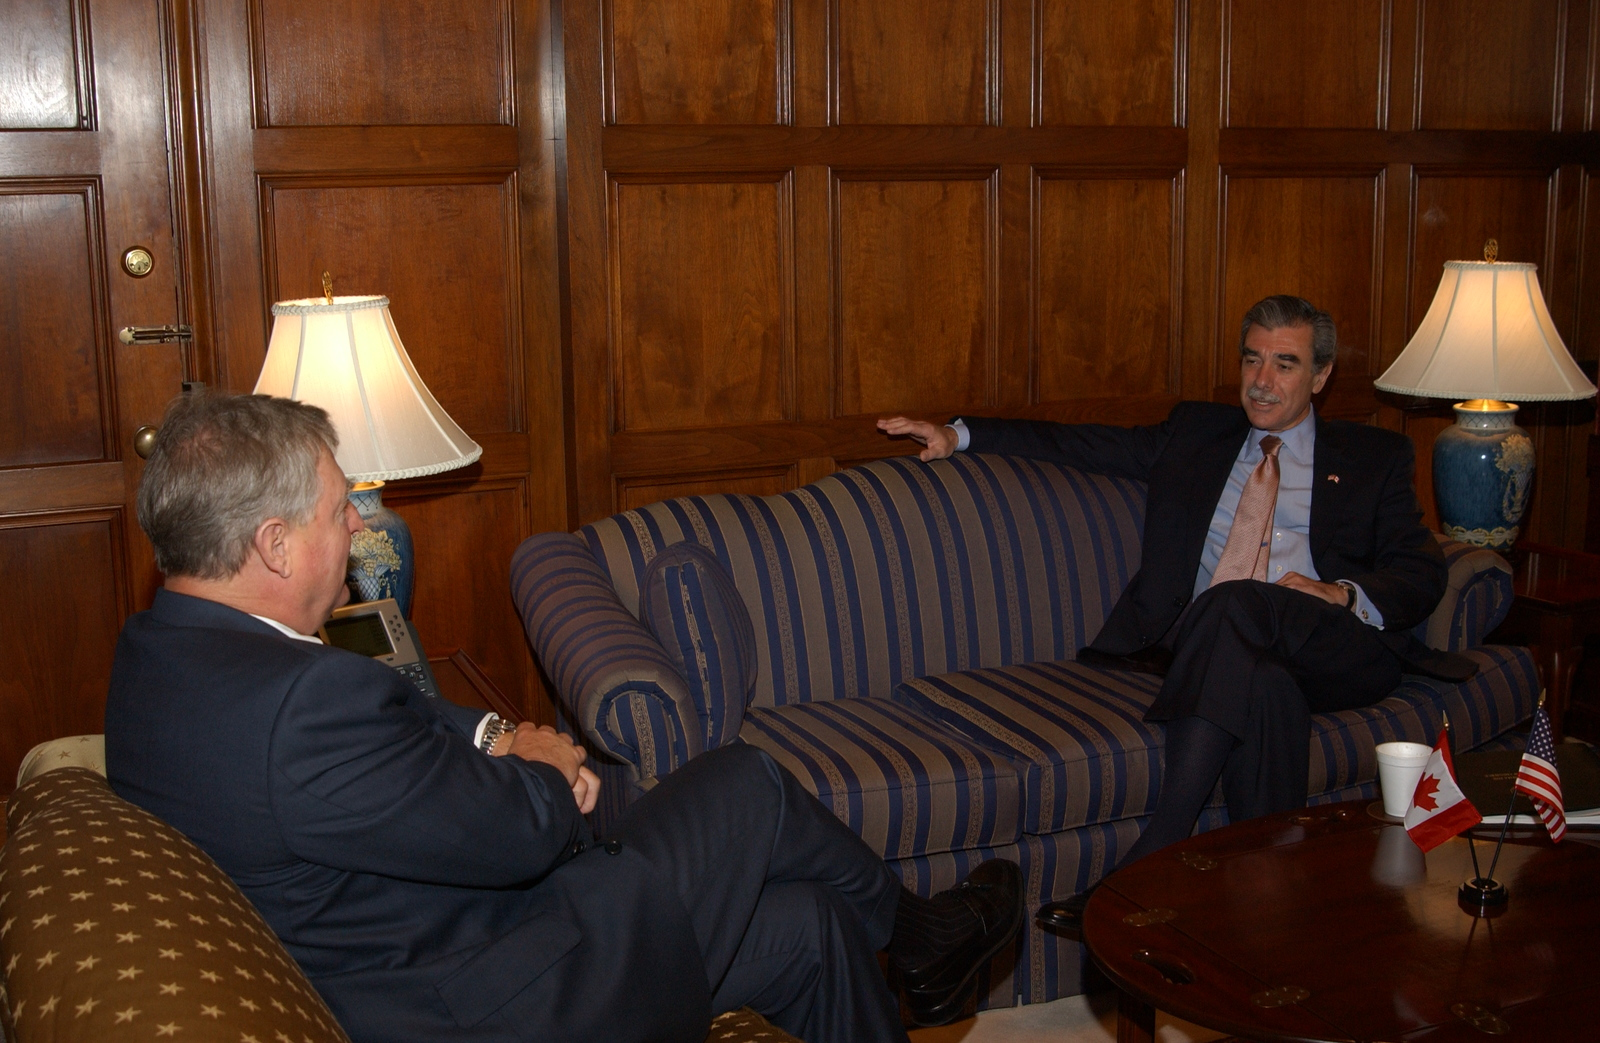 [Assignment: OS_2005_1201_317] Office of the Secretary - Canadian Minister with Secretary Carlos Gutierrez [40_CFD_OS_2005_1201_317_656.JPG]